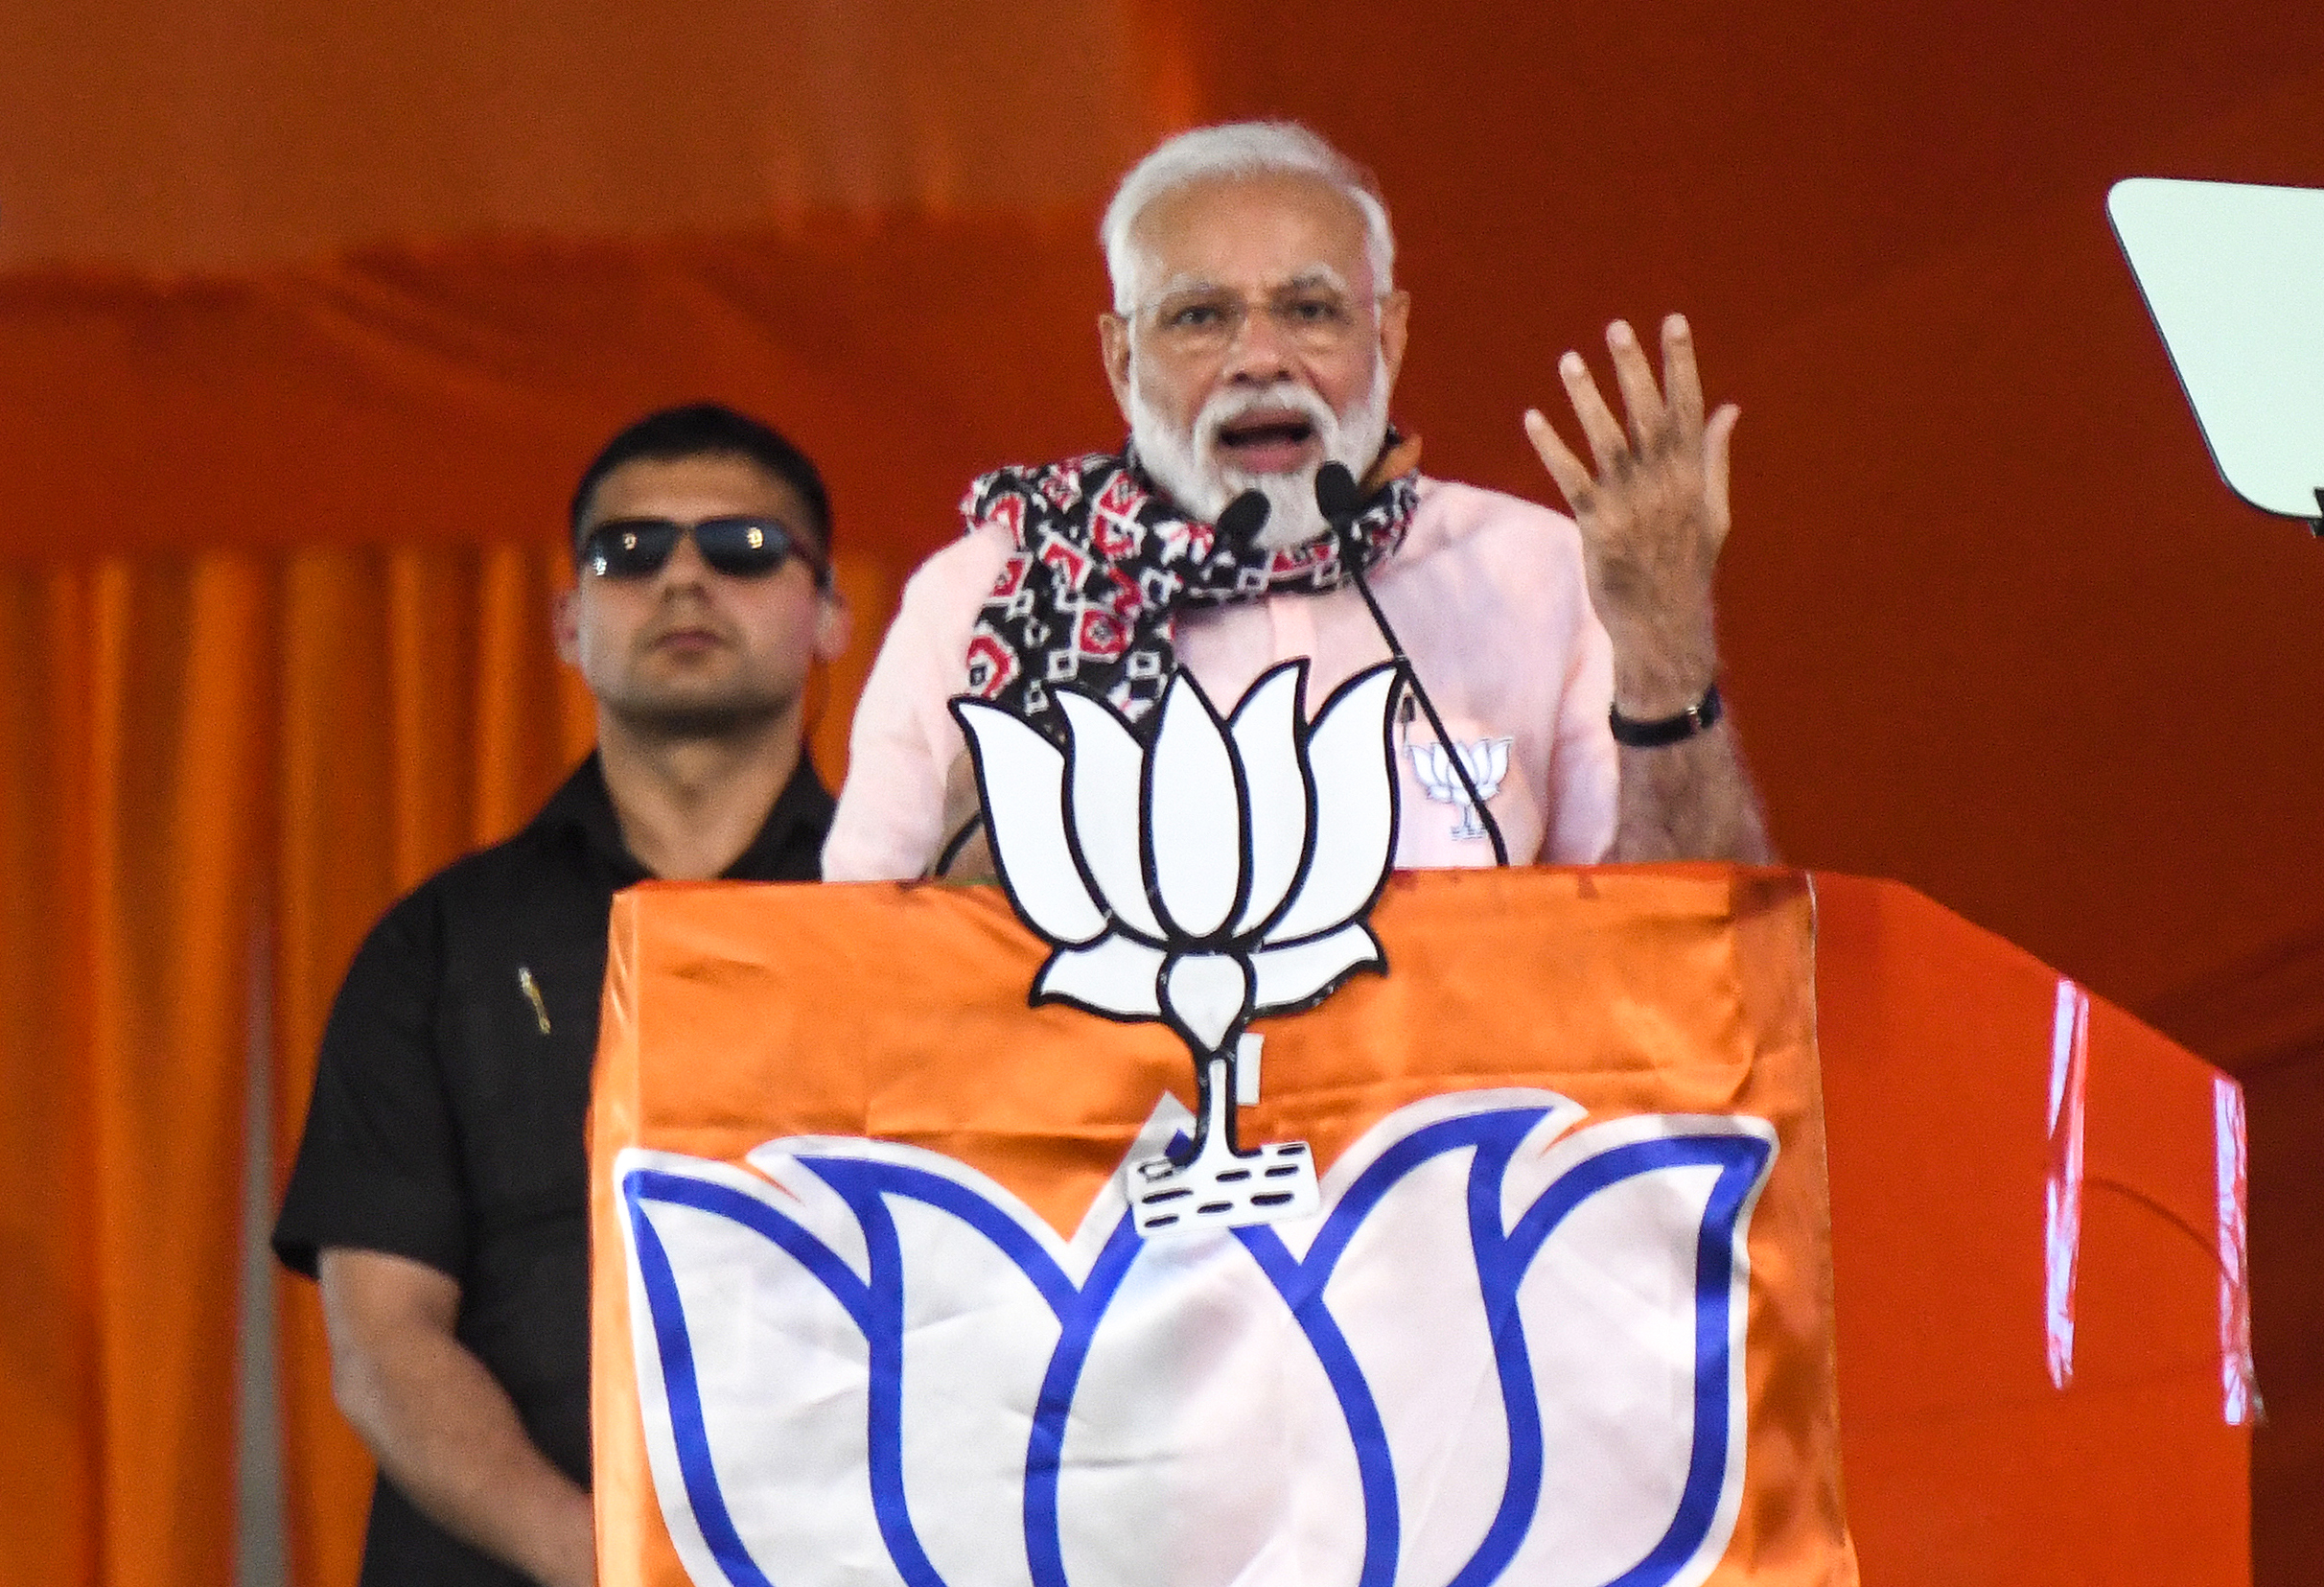 Narendra Modi campaigning in Hyderabad on April 1, 2019.